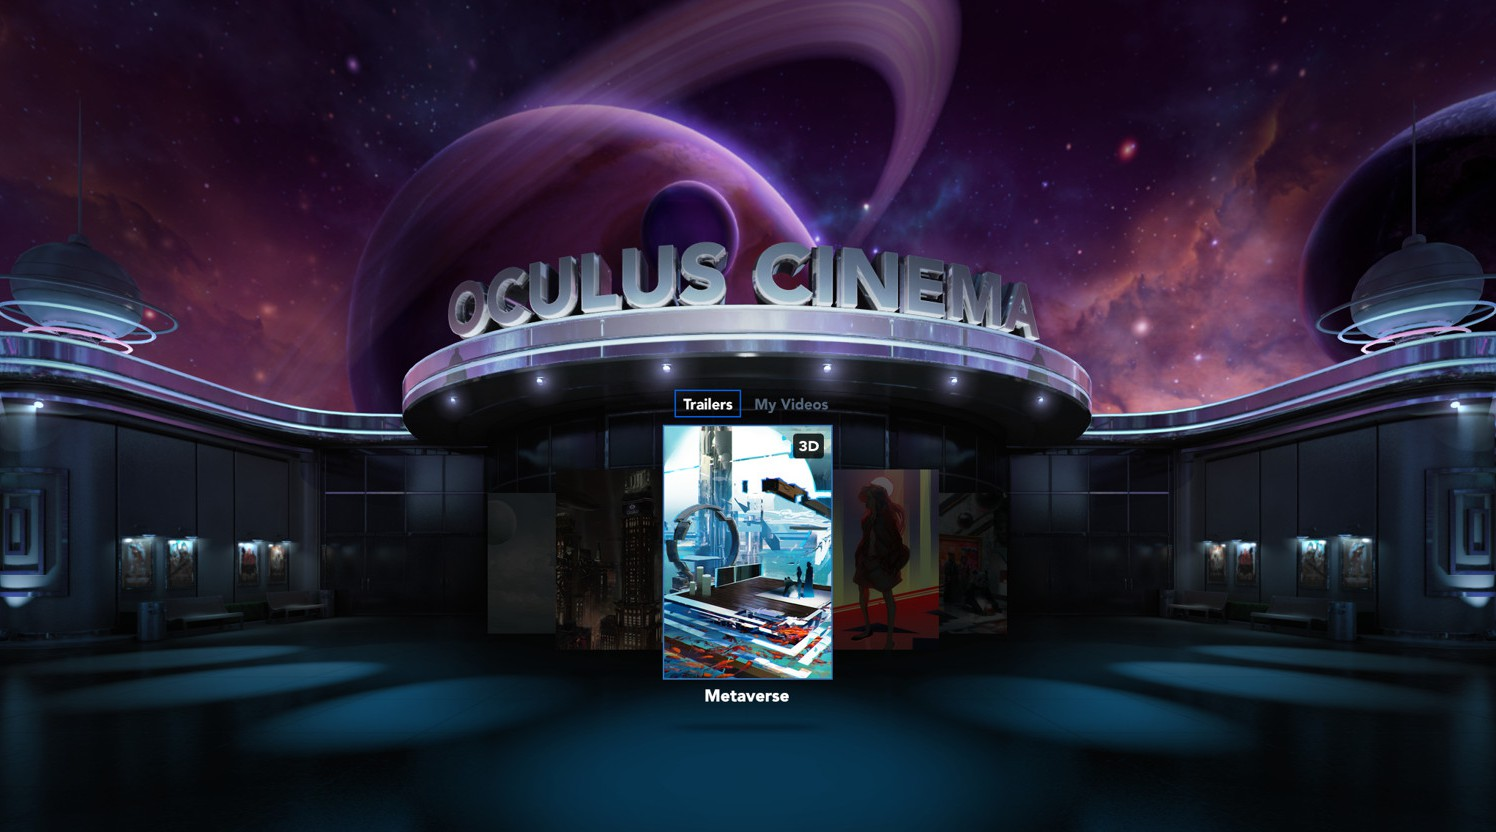 Oculus Cinema' Getting Online Multiplayer and New Social